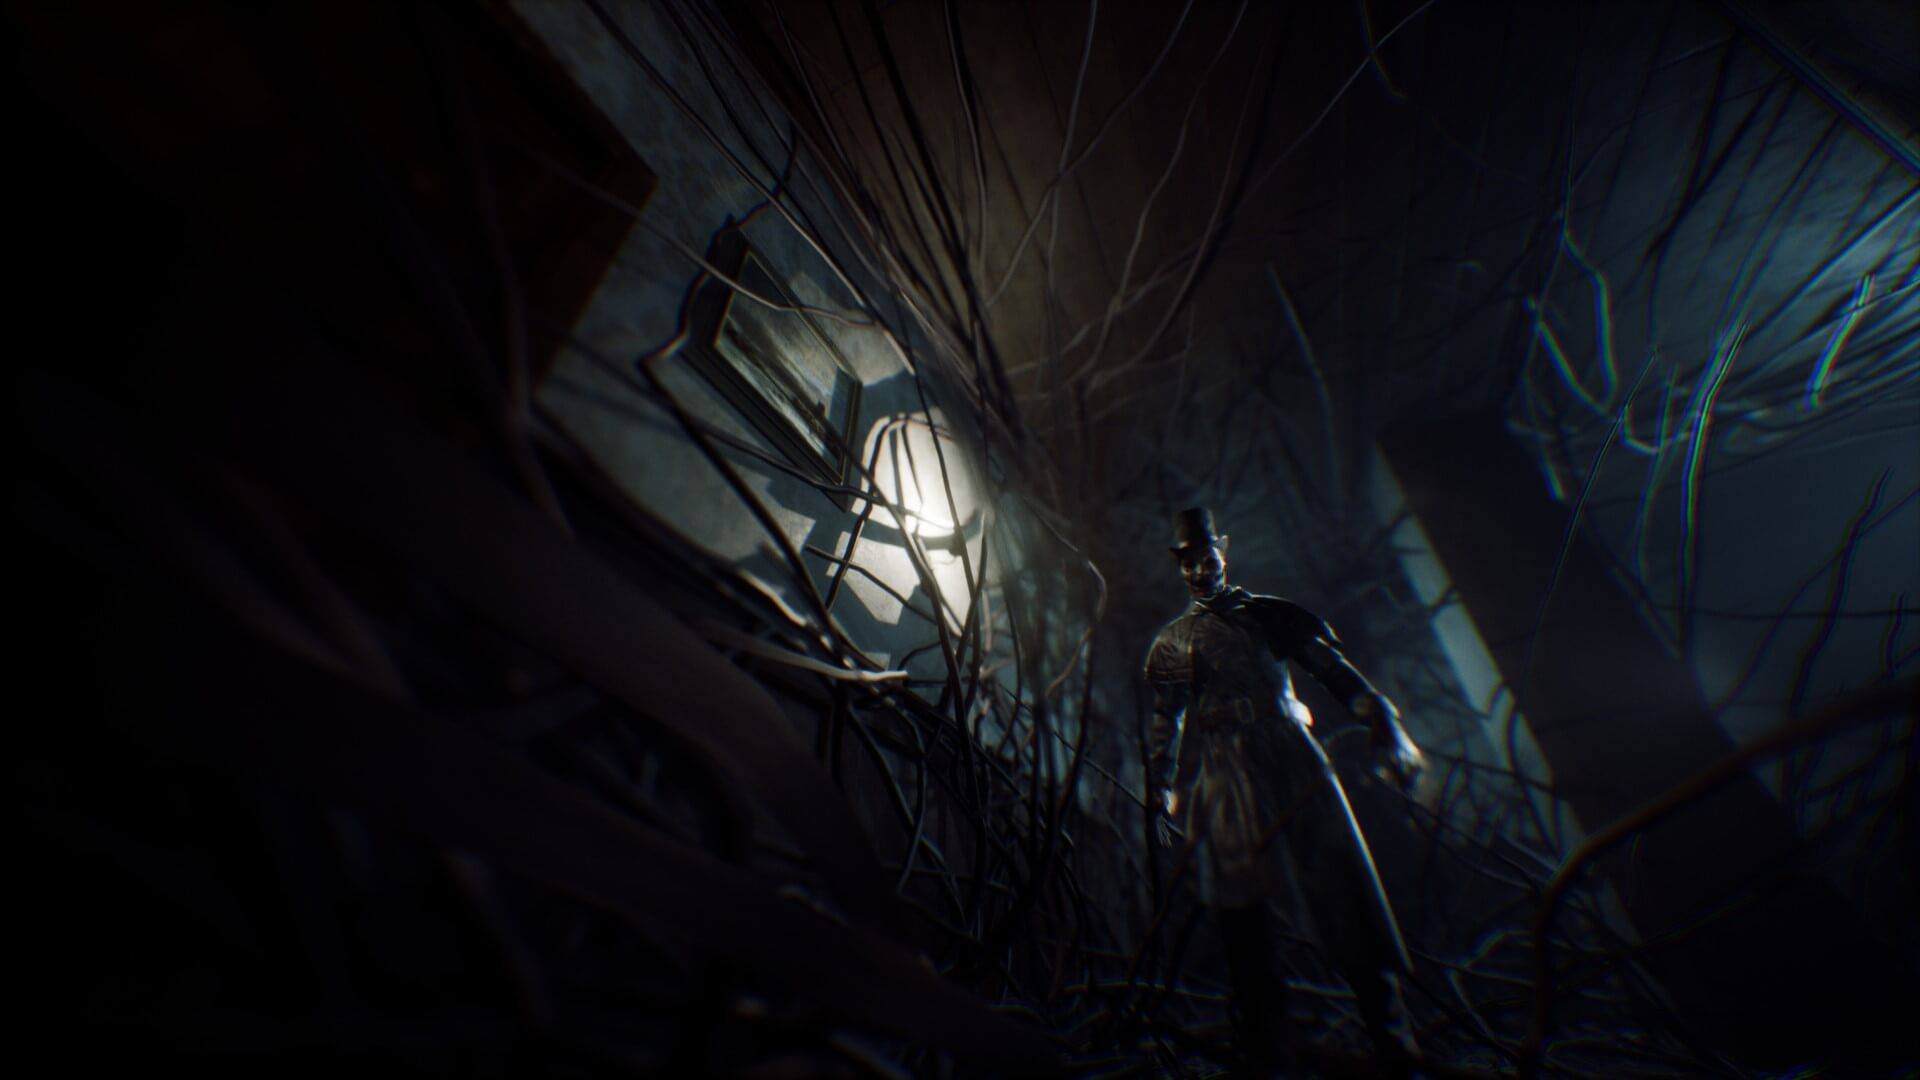 The Beast Inside Review: A Bit of a Horror Roller Coaster